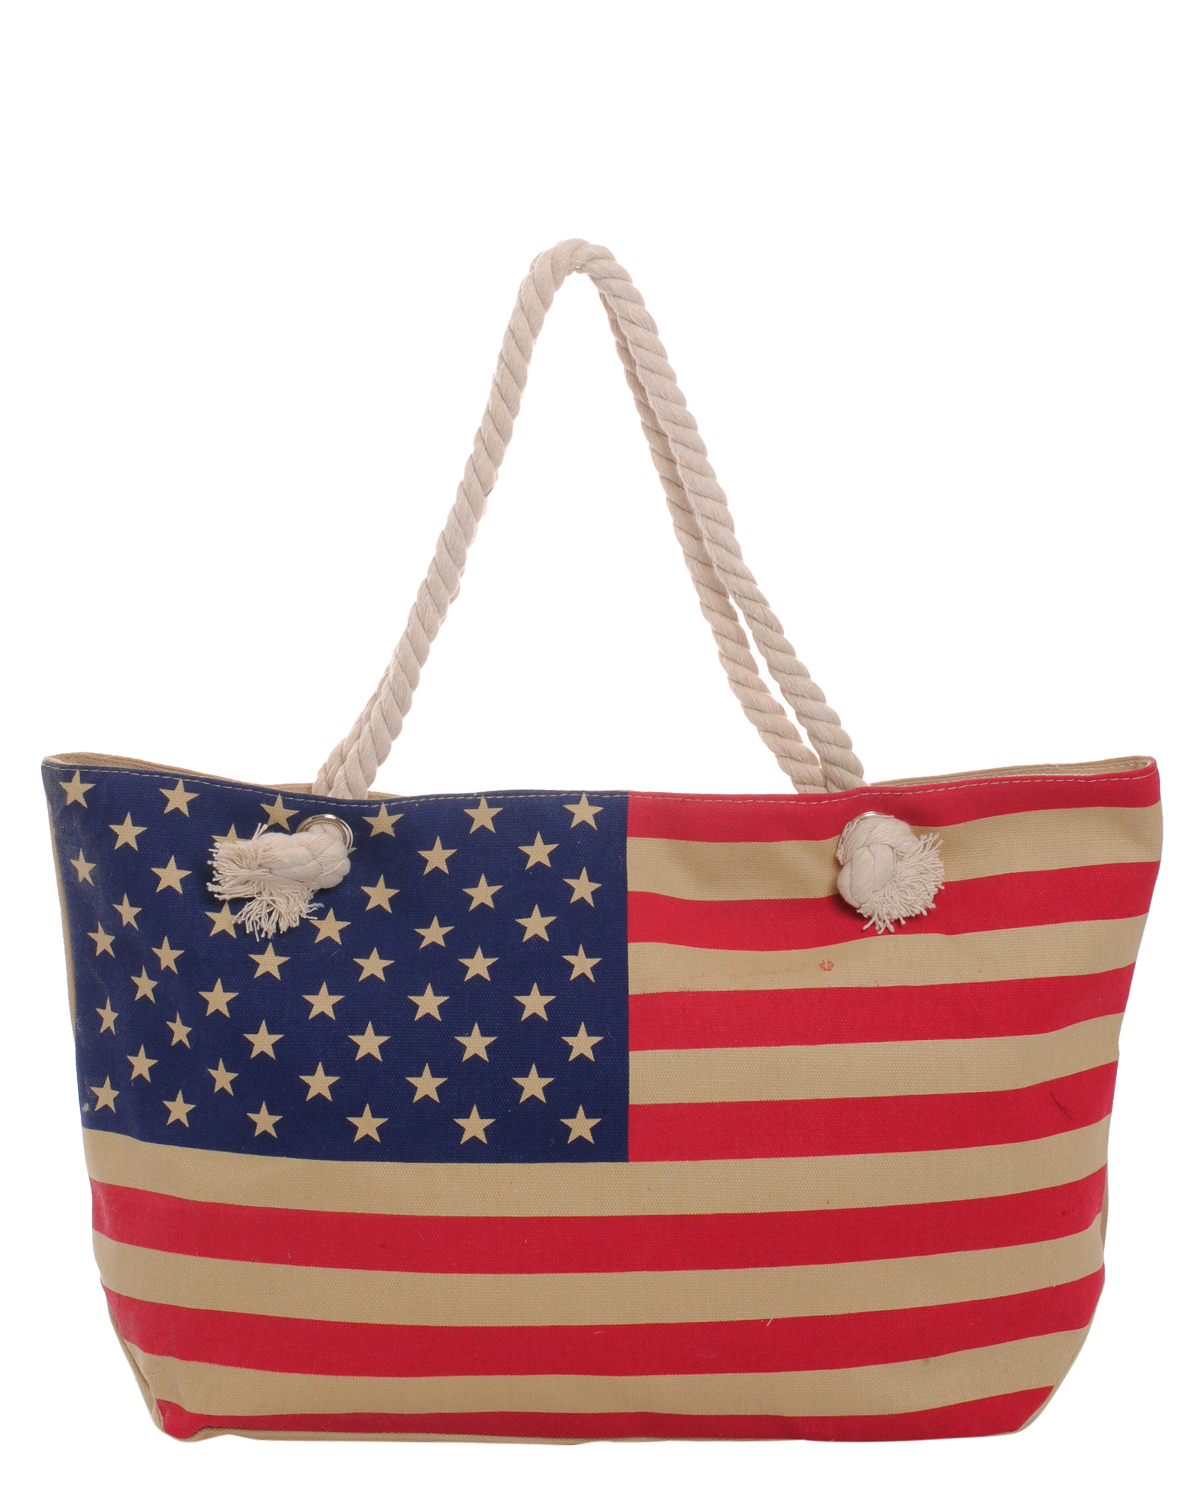 5325fb536593 Get Incredible Discount Prices on our Wholesale Fashion Handbags Today!